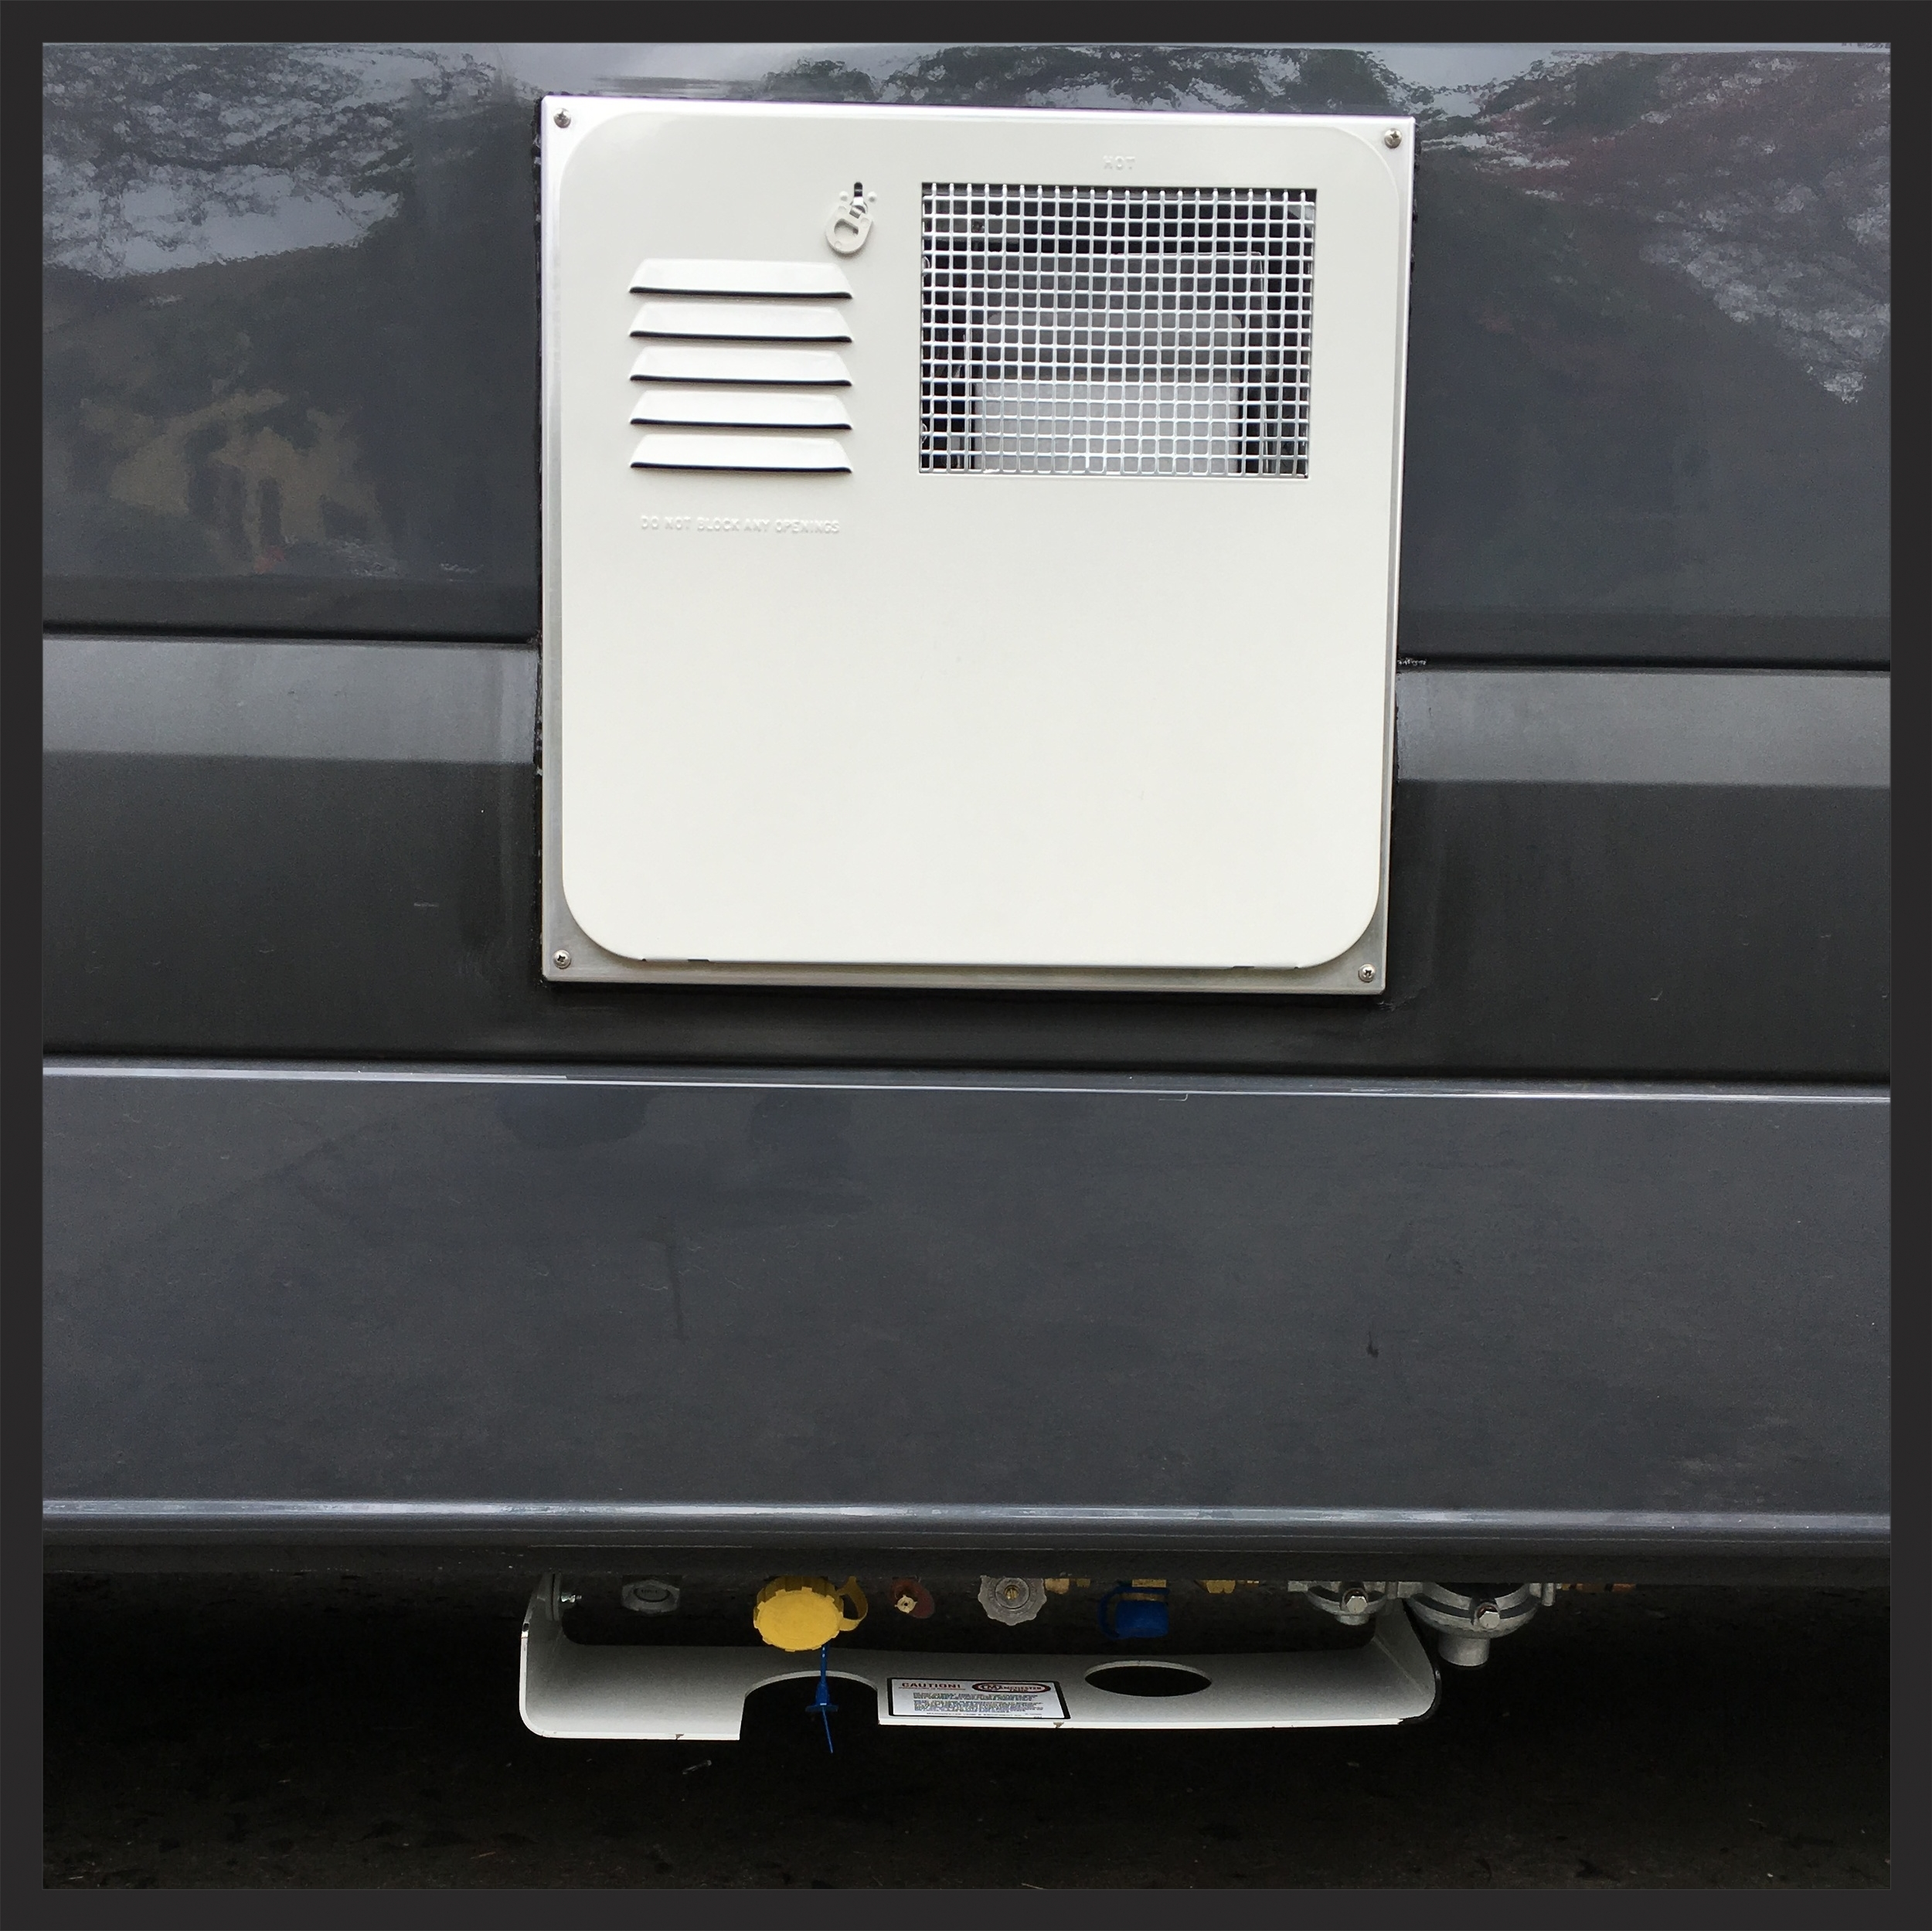 The propane inlet and hot water and hot water heater grill